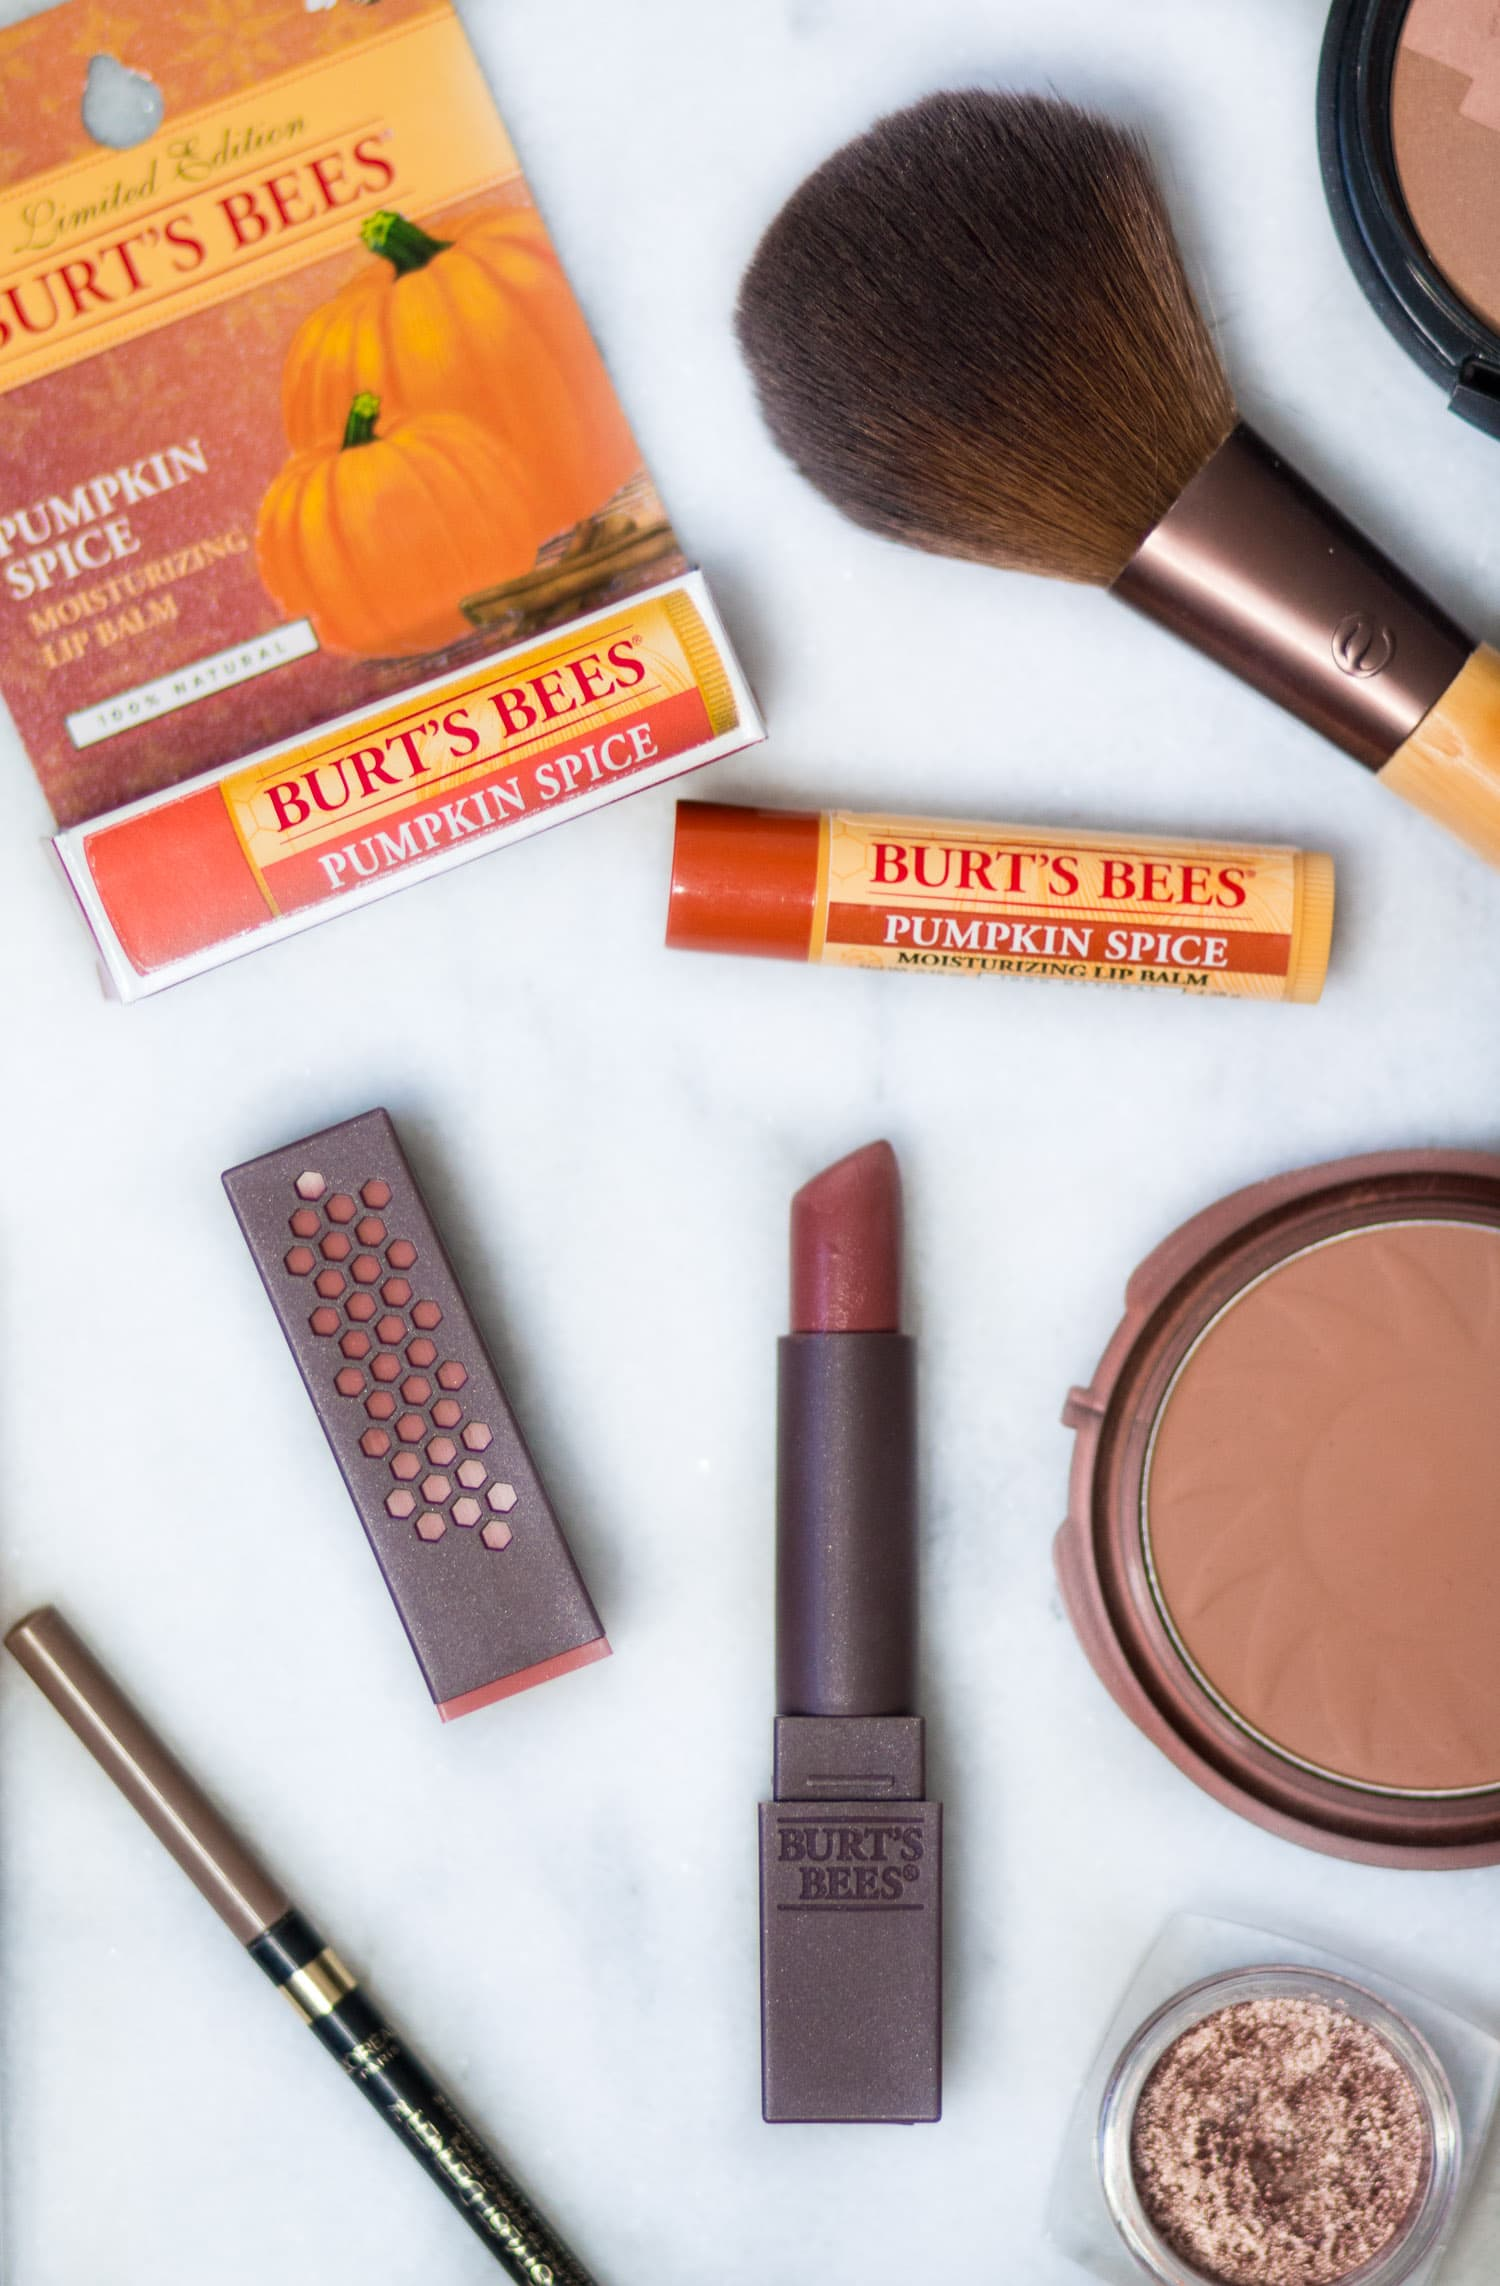 Easy pumpkin spice makeup tutorial featuring all drugstore makeup and Burt's Bees Pumpkin Spice lip balm and lipstick in Suede Splash by beauty blogger Ashley Brooke Nicholas